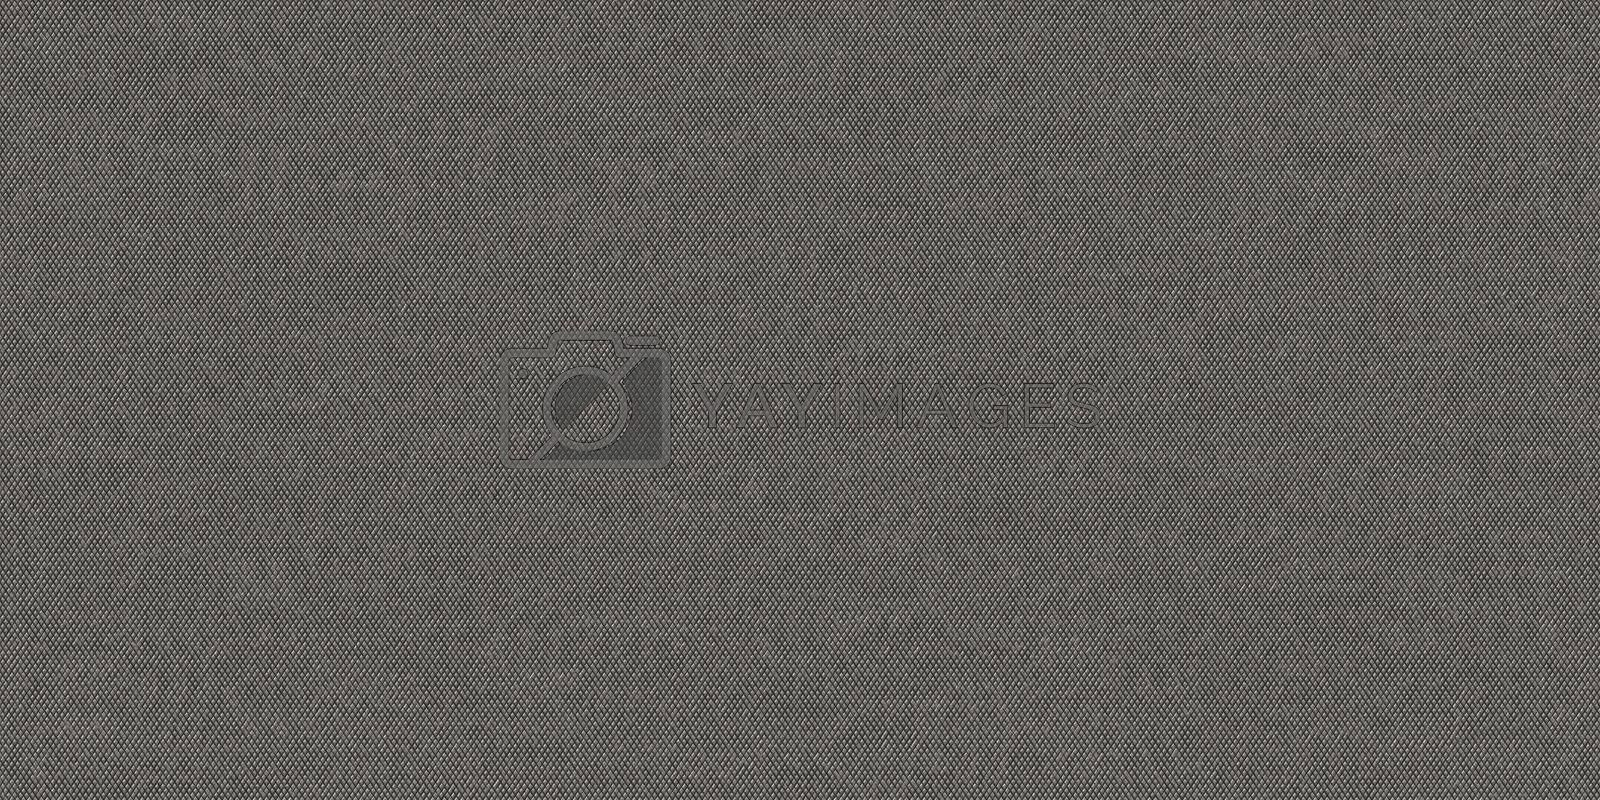 Knurling touch texture. Knurl contact surface background. Metal rhombus pattern surface.